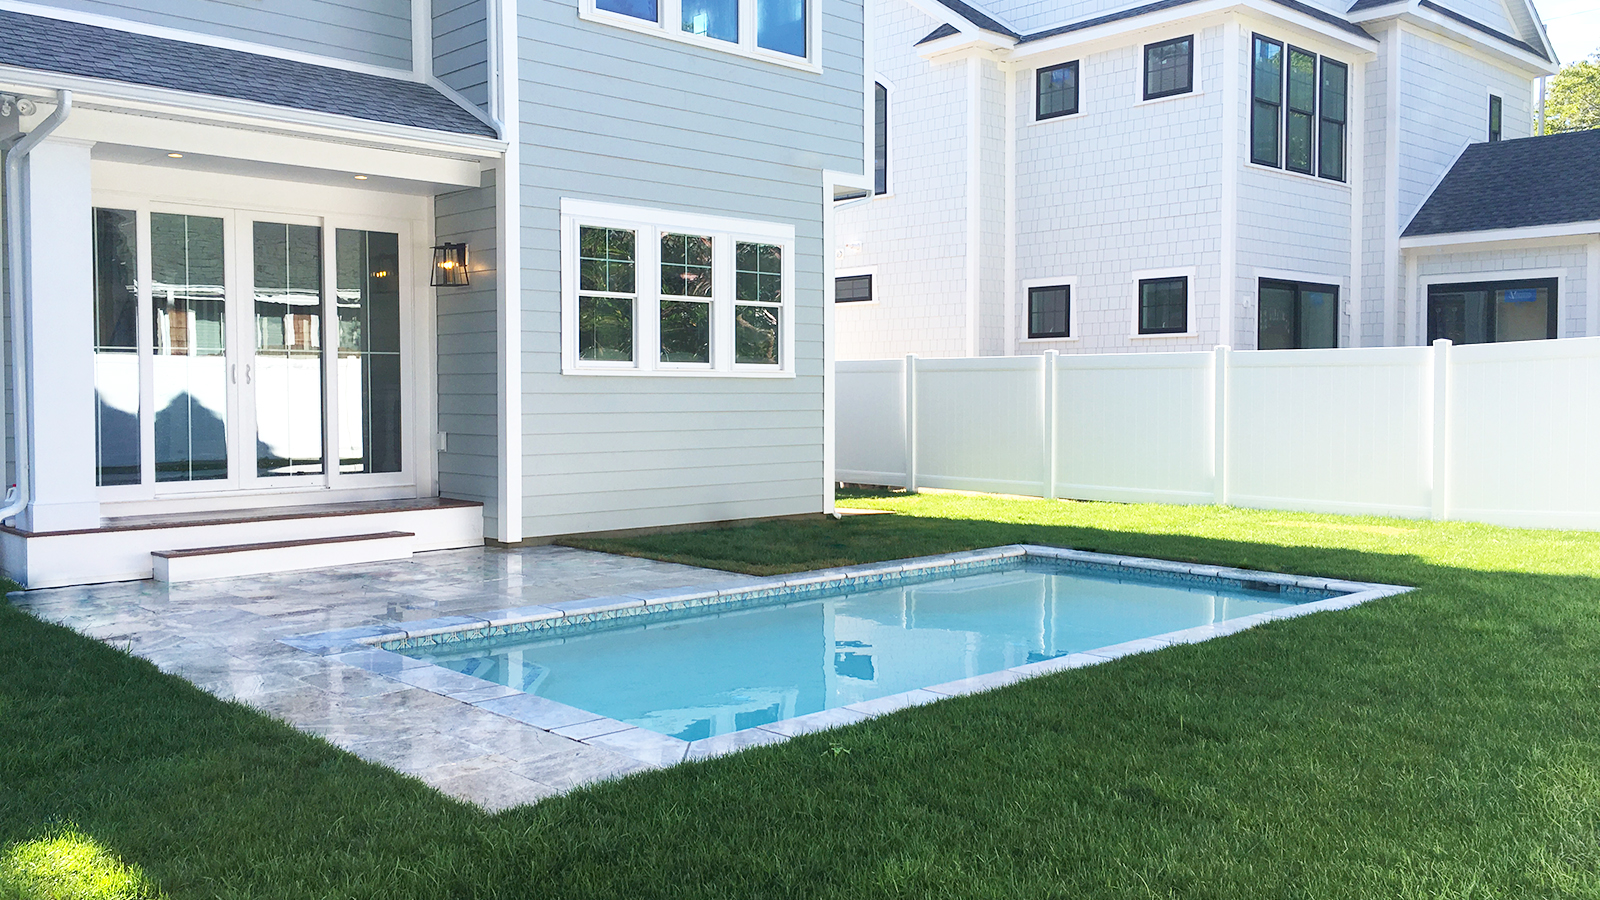 453_tskc-complete-ed-prj Custom Swimming Pool Design, Renovation & Inspection - Carter Aquatics